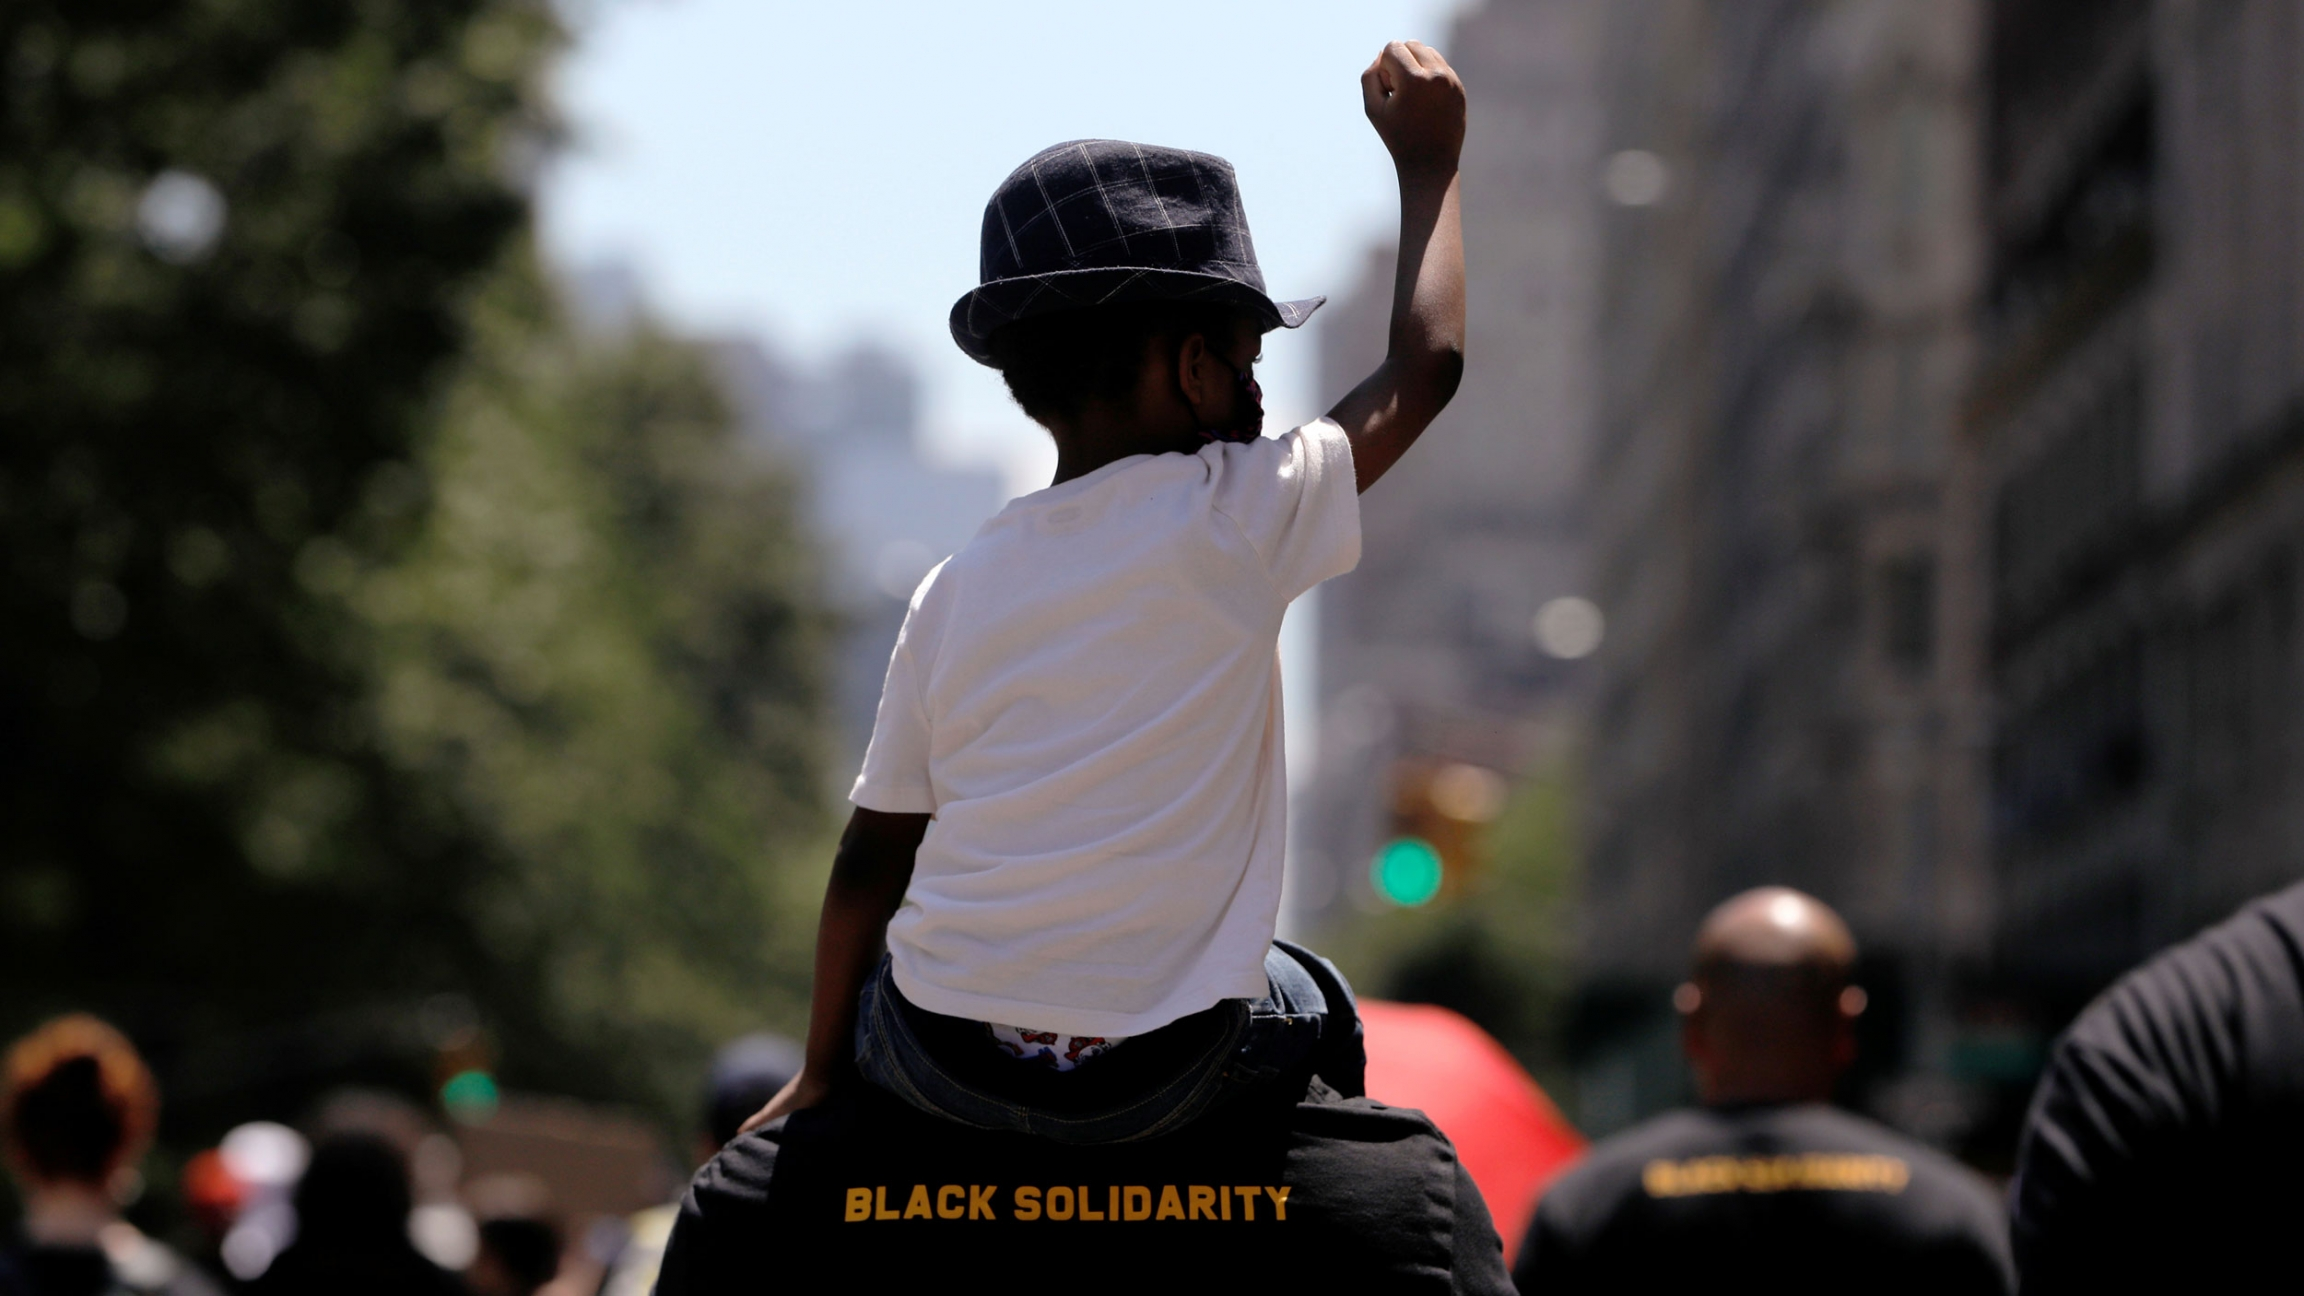 """A young boy is shown wearing a white t-shirt and had while sitting on the shoulder of a man wearing a shirt with """"Black Solidarity"""" printed on it."""